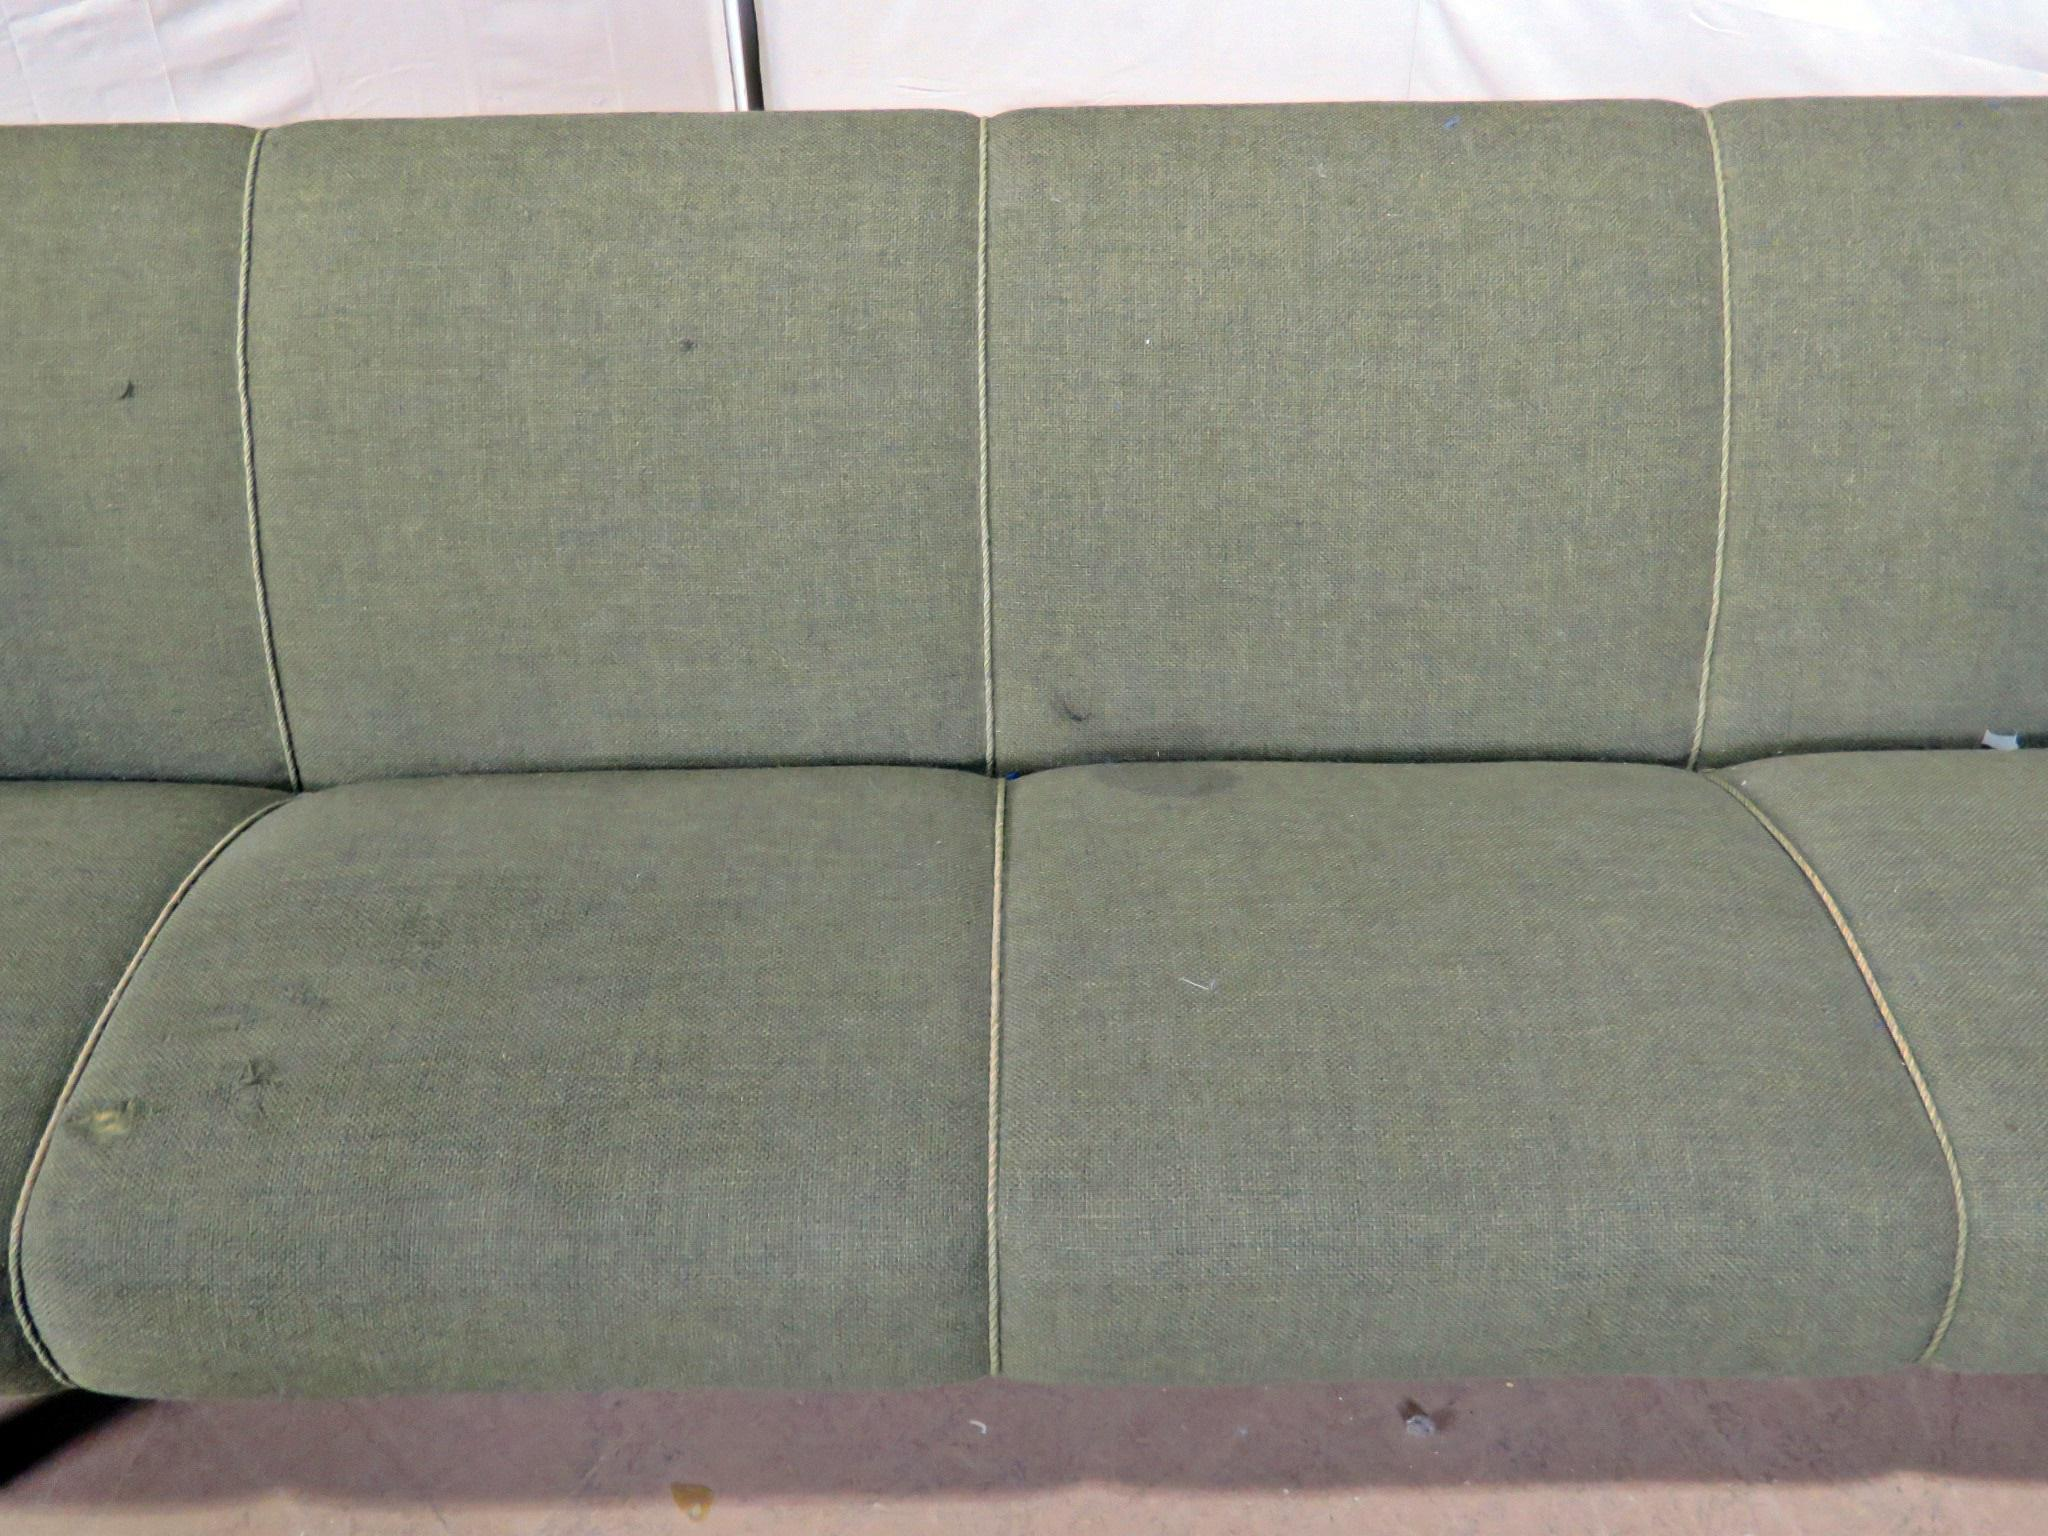 Vintage Mid Century Modern Sofa With Piping To The Upholstery.